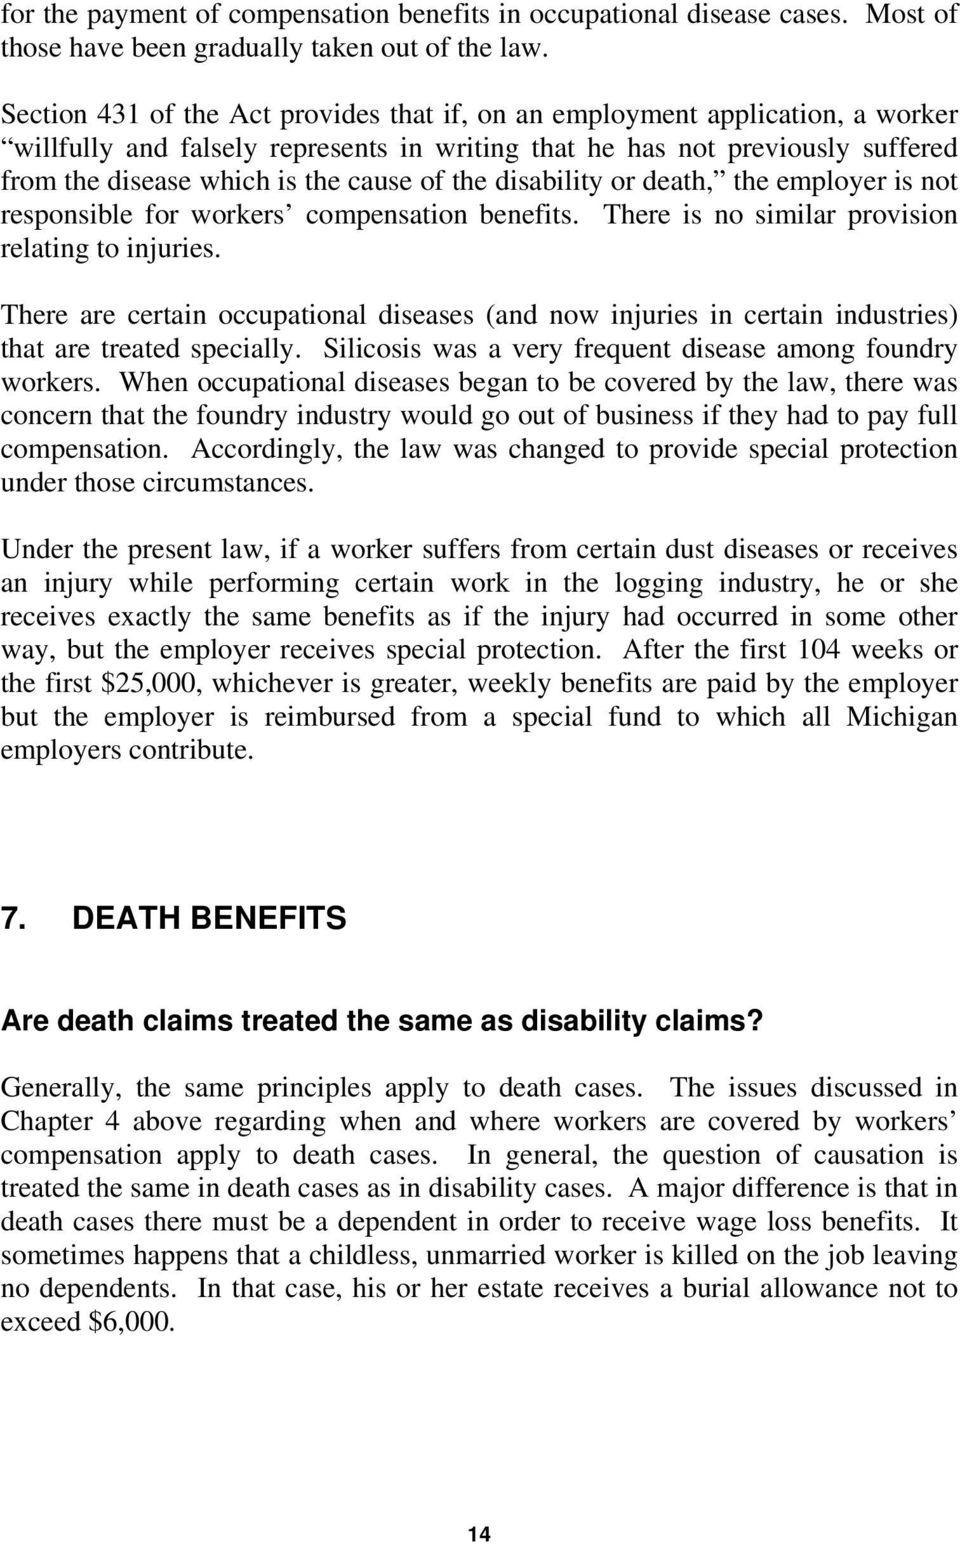 the disability or death, the employer is not responsible for workers compensation benefits. There is no similar provision relating to injuries.